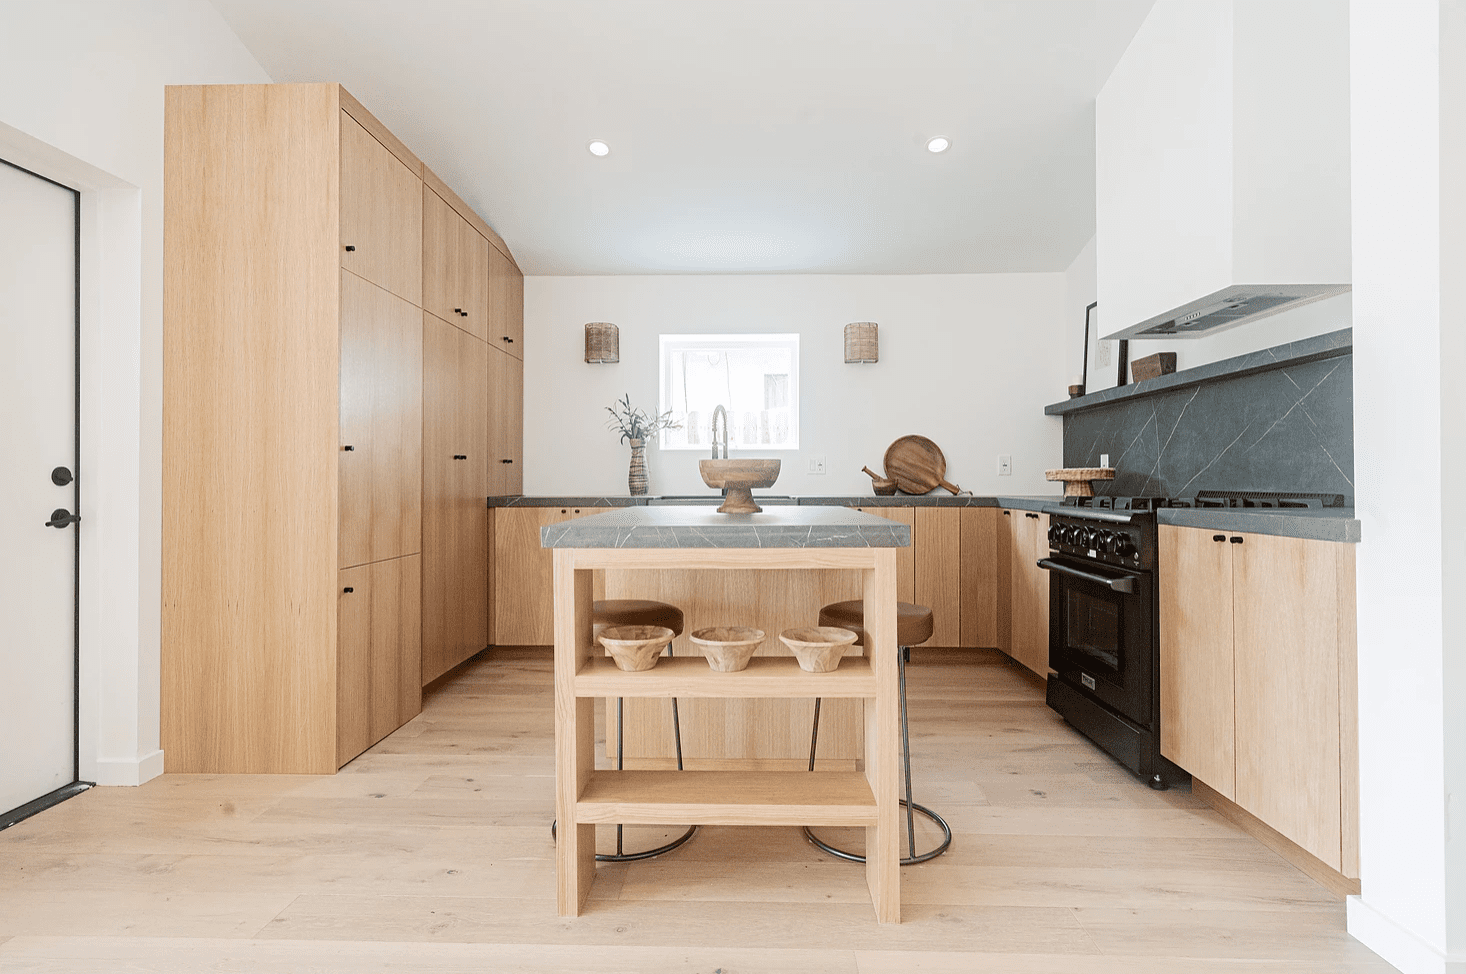 A modern kitchen crafted from wood and marble